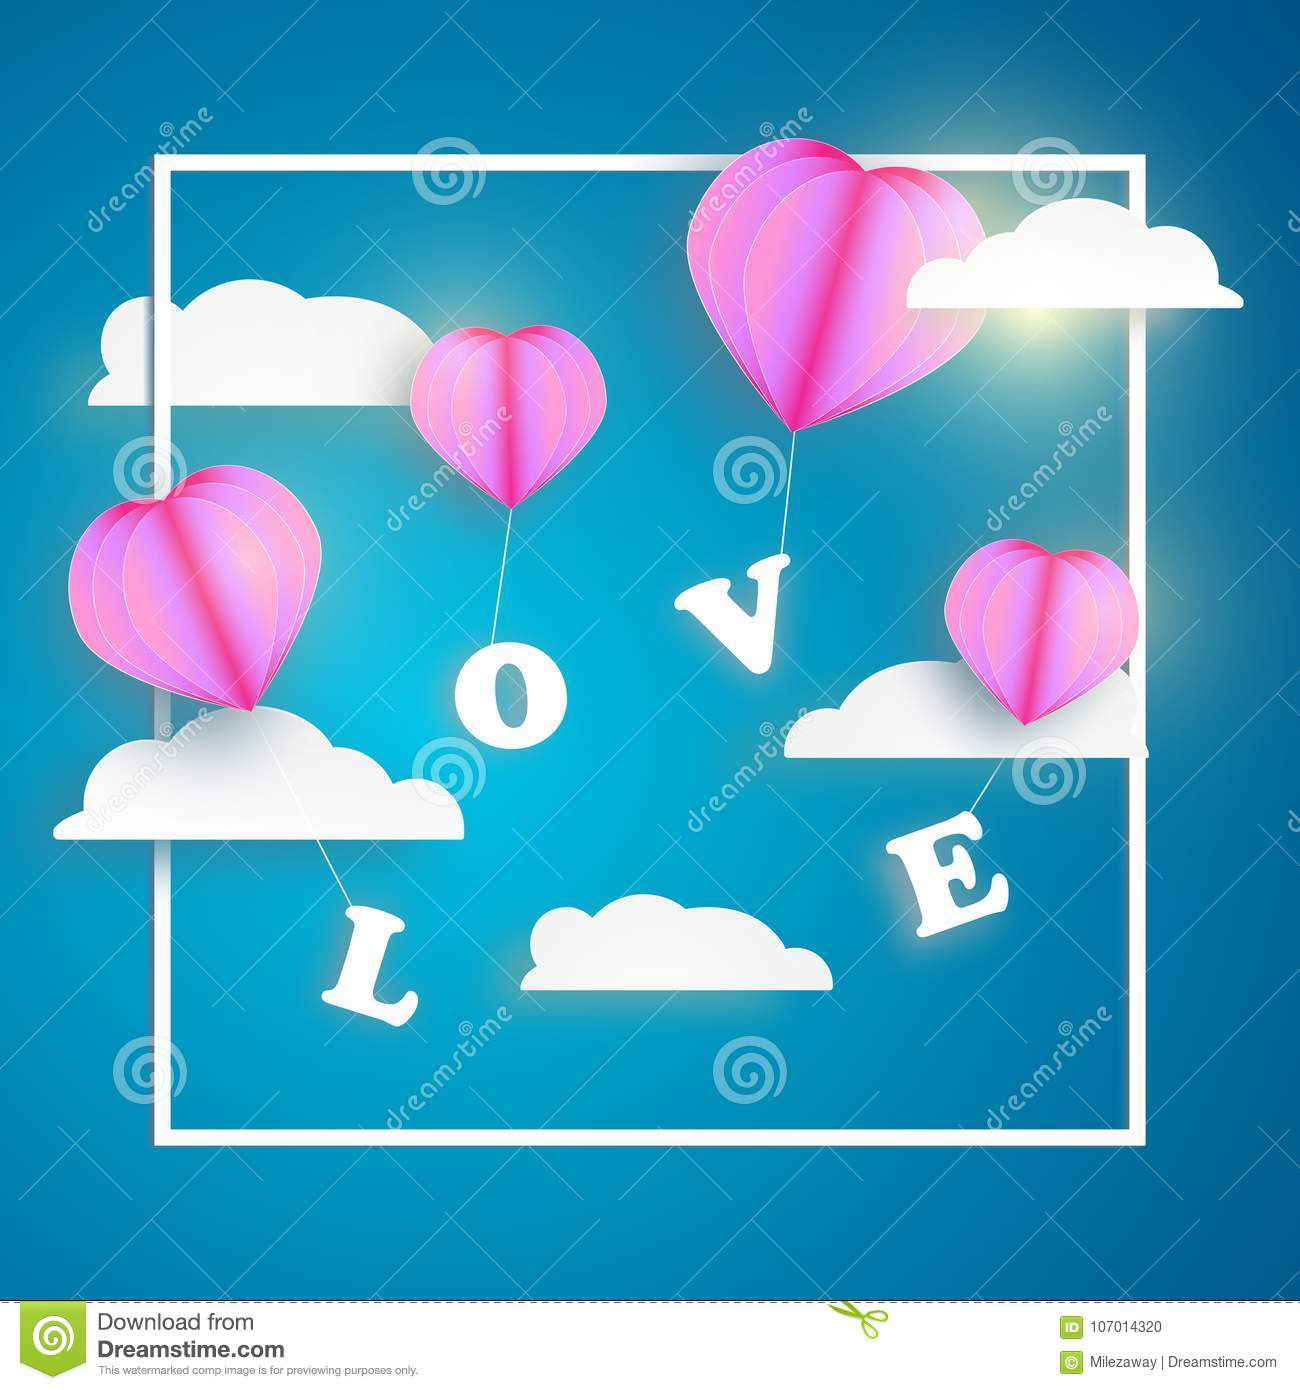 Abstract Pink Heart Balloon Carrying Love Letter In Blue Sky With